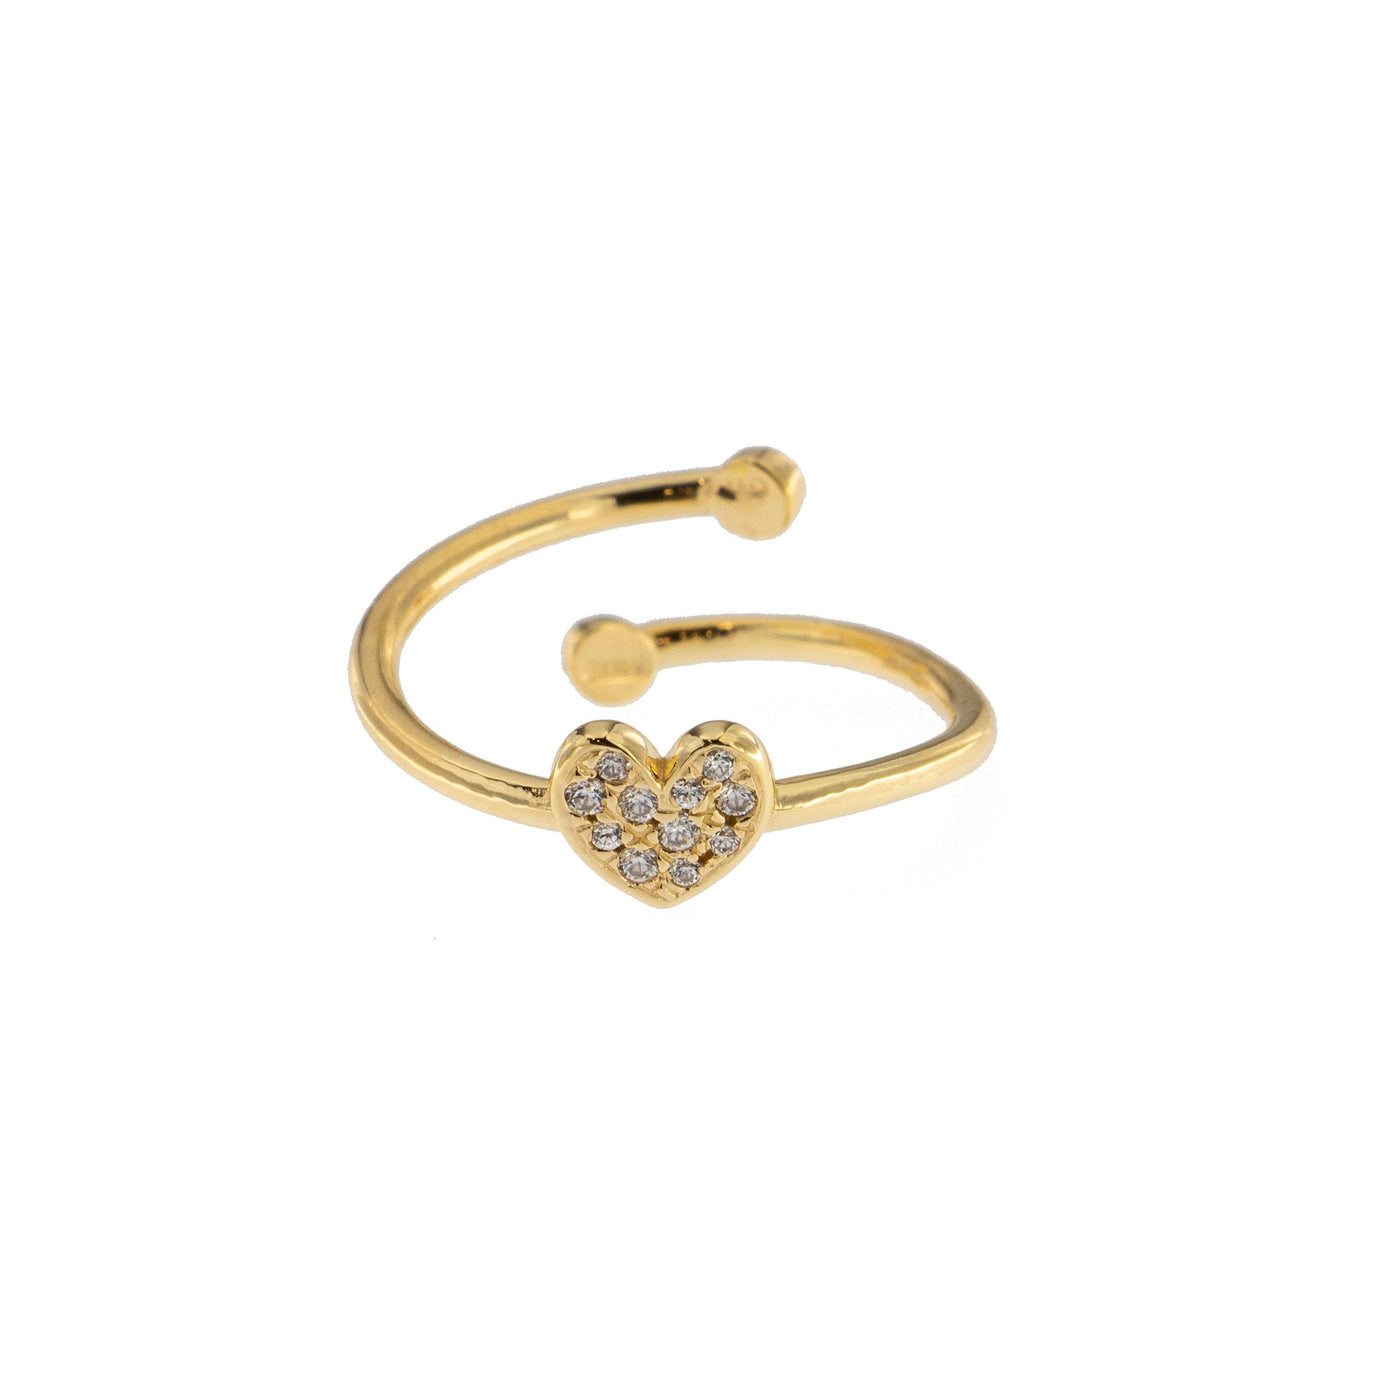 Rings - Zirconia Cubic Heart Ring - 2 | Rue des Mille